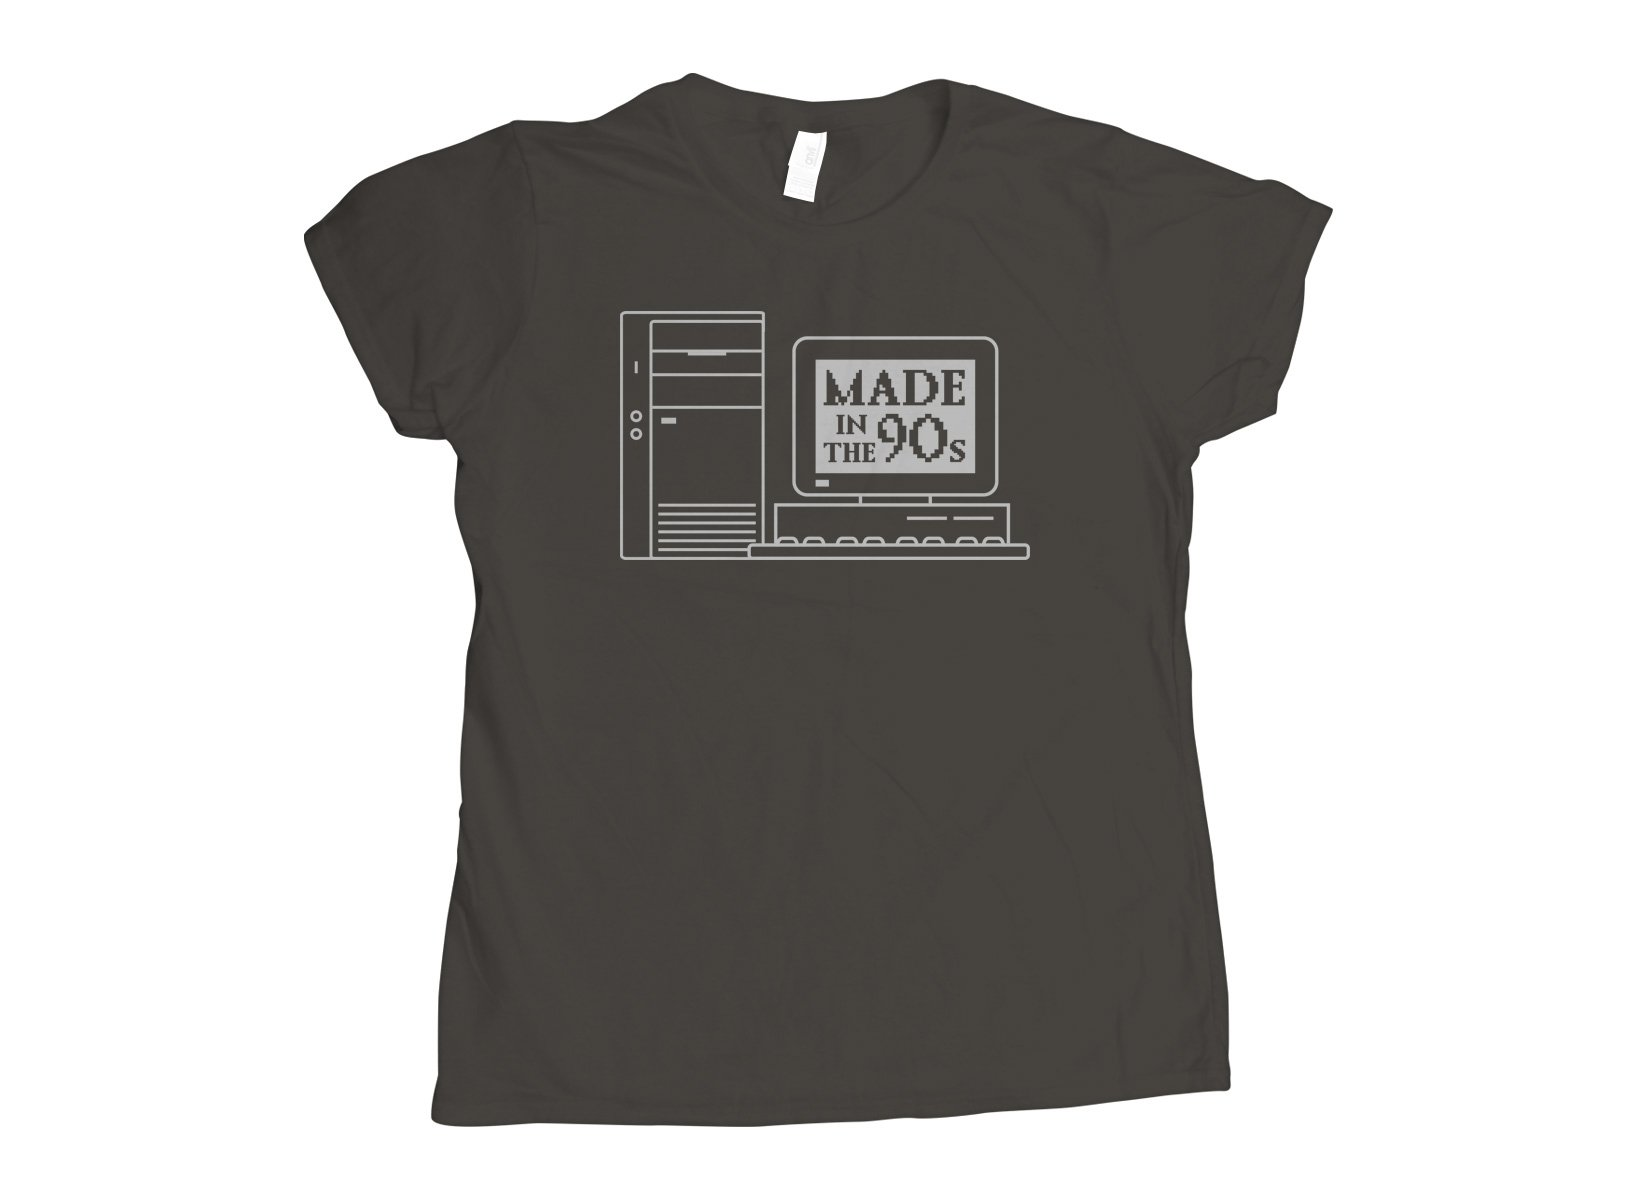 Made In The 90s on Womens T-Shirt